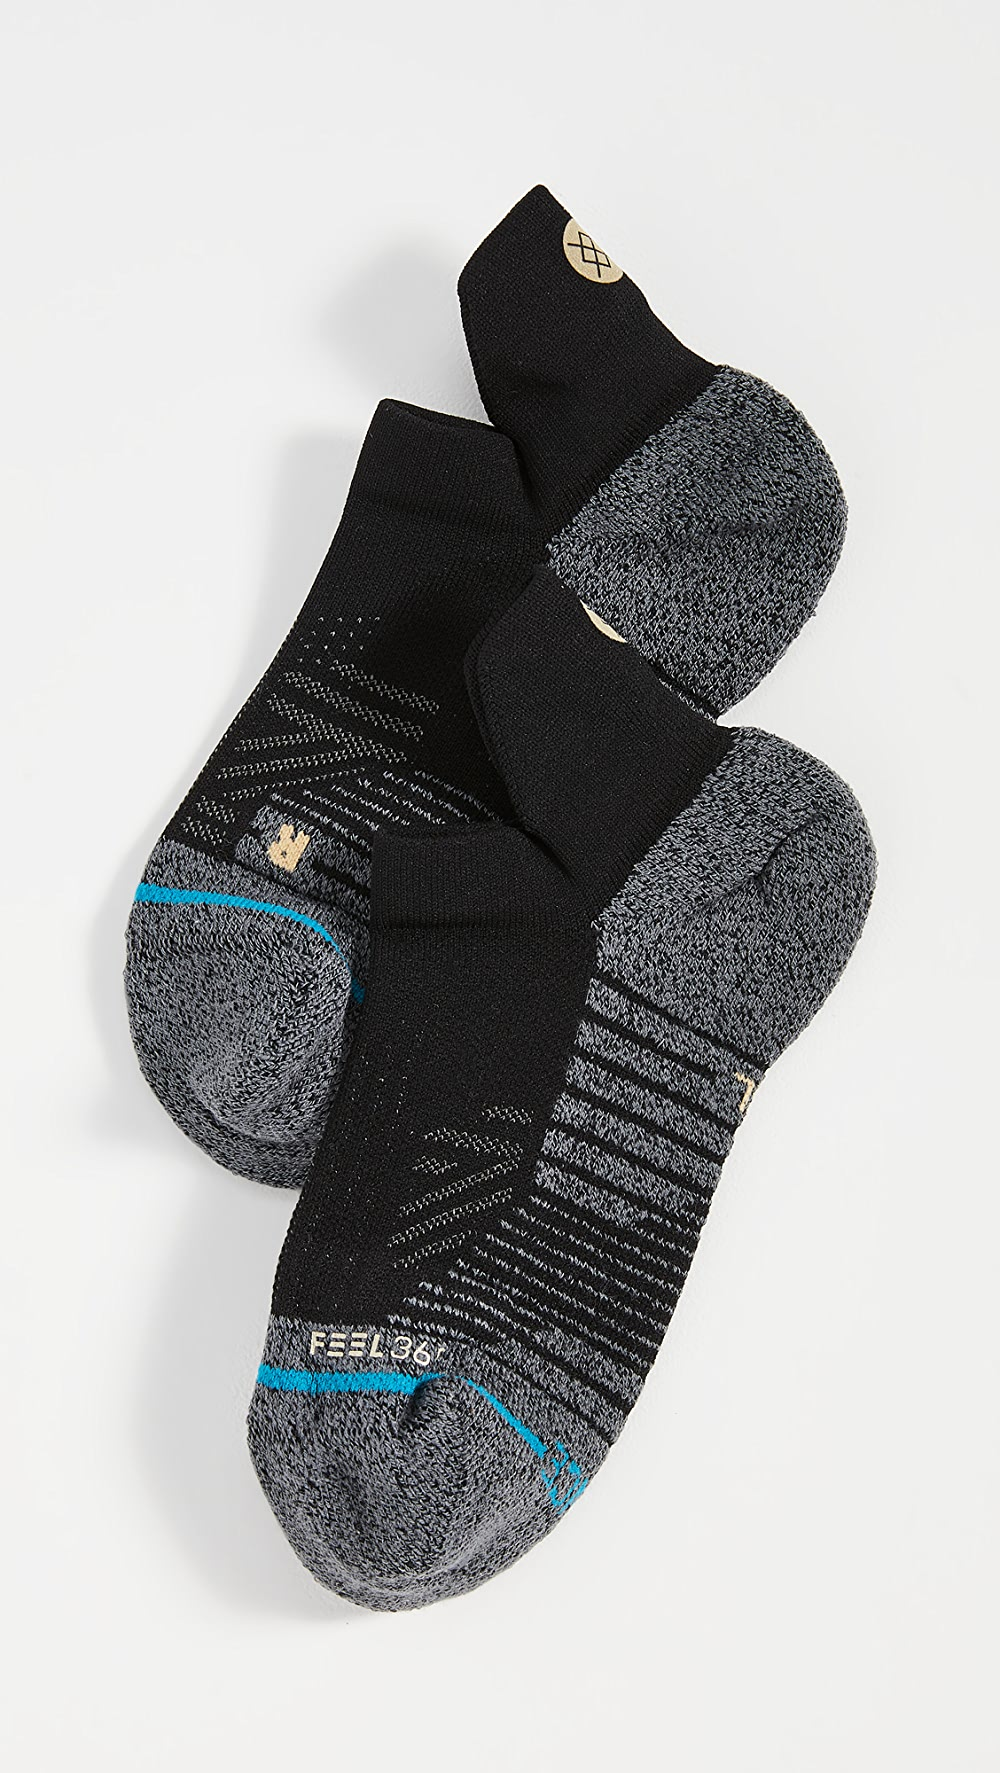 Rapture Stance - Athletic Tab St Socks A Complete Range Of Specifications